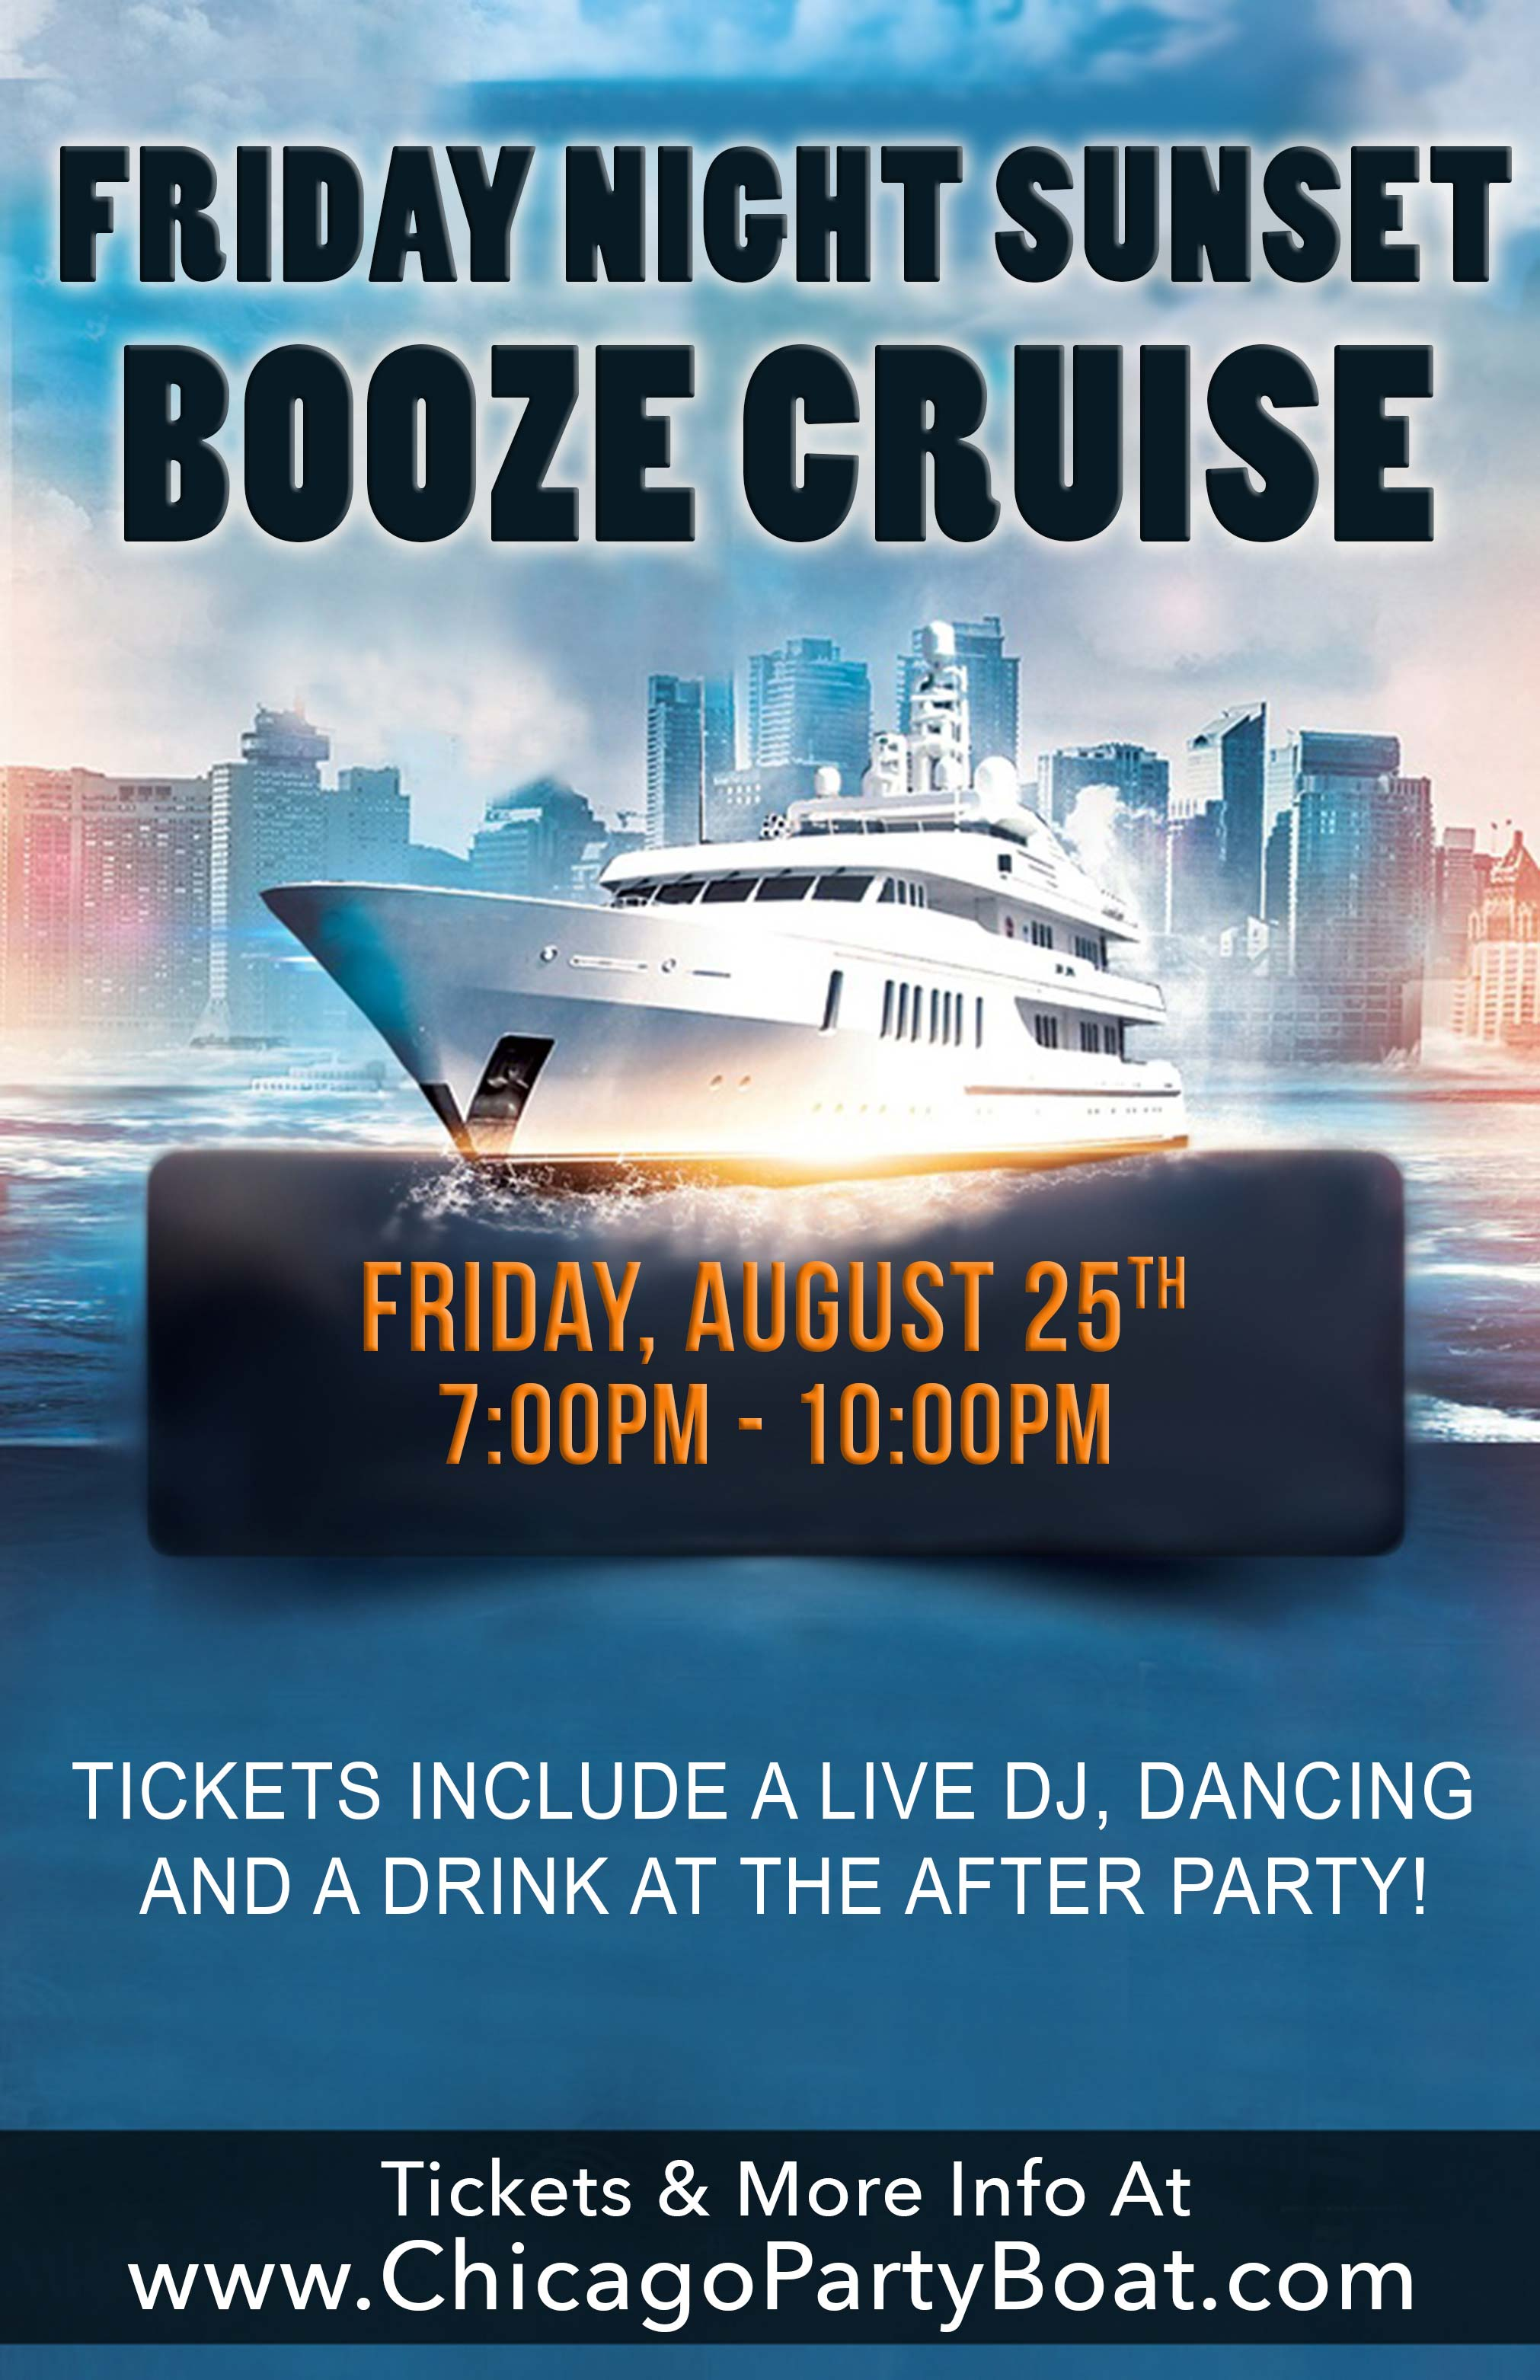 Friday Night Sunset Booze Cruise Party - Tickets include a Live DJ, Dancing, and A Drink At The After-Party!